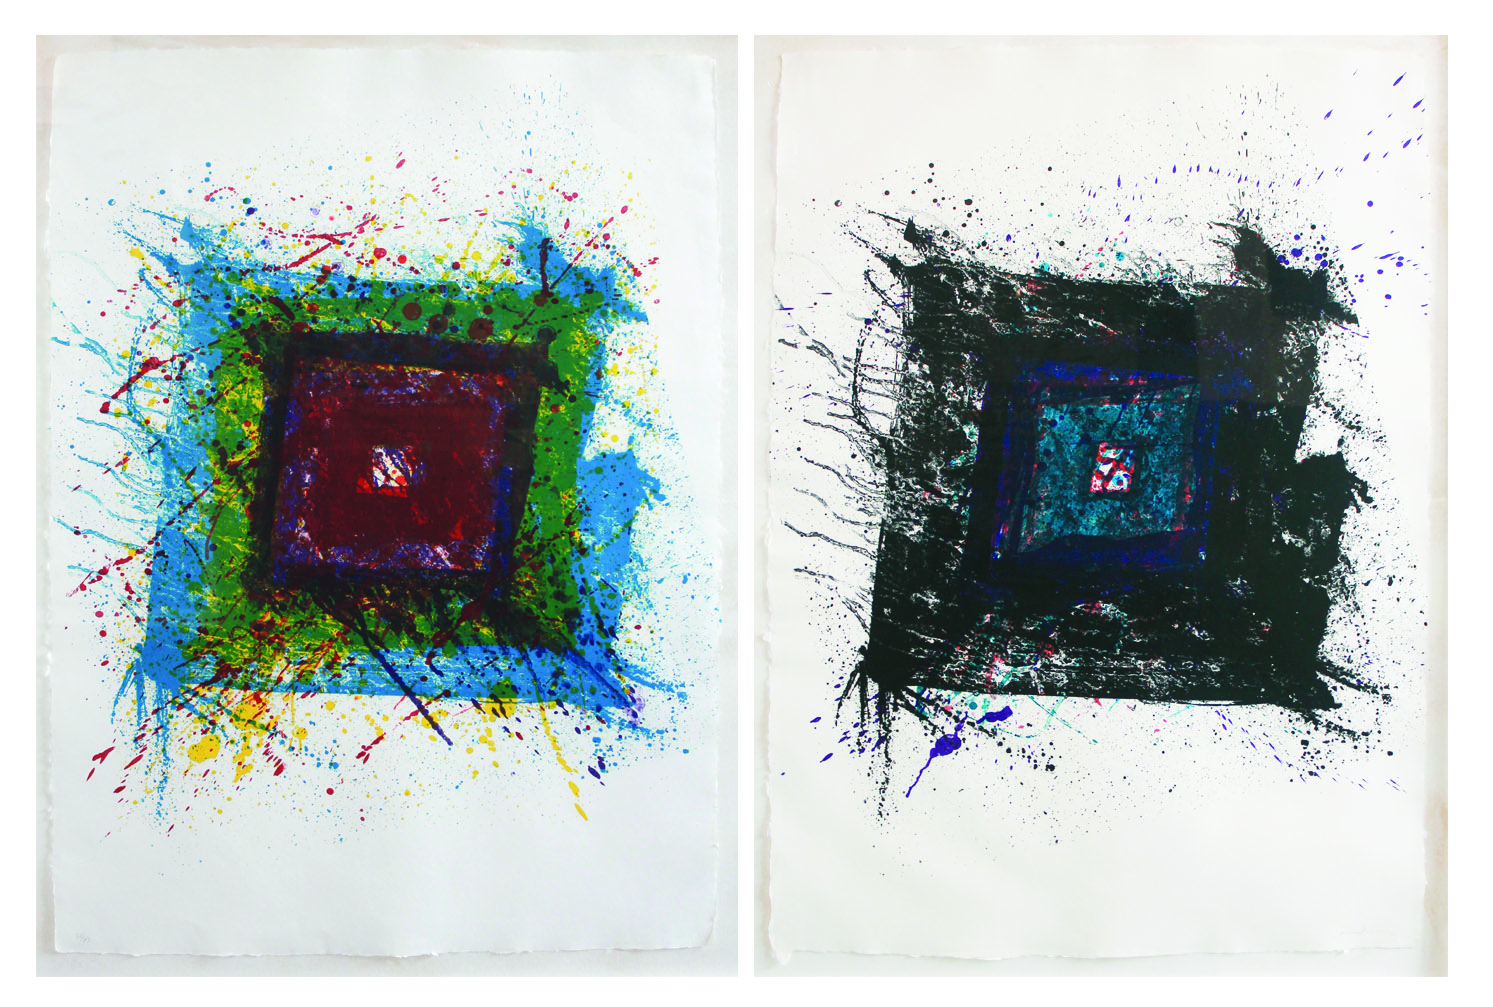 Sam Francis (1923-1944)    Paradise of Ash , 1981 Lithograph on John Koller paper in two panels From the numbered edition of 43 Signed and numbered in pencil on recto Sheet: 46 x 32 inches, each; Framed: 51 x 71.5 inches Estimate: $4,000/$6,000